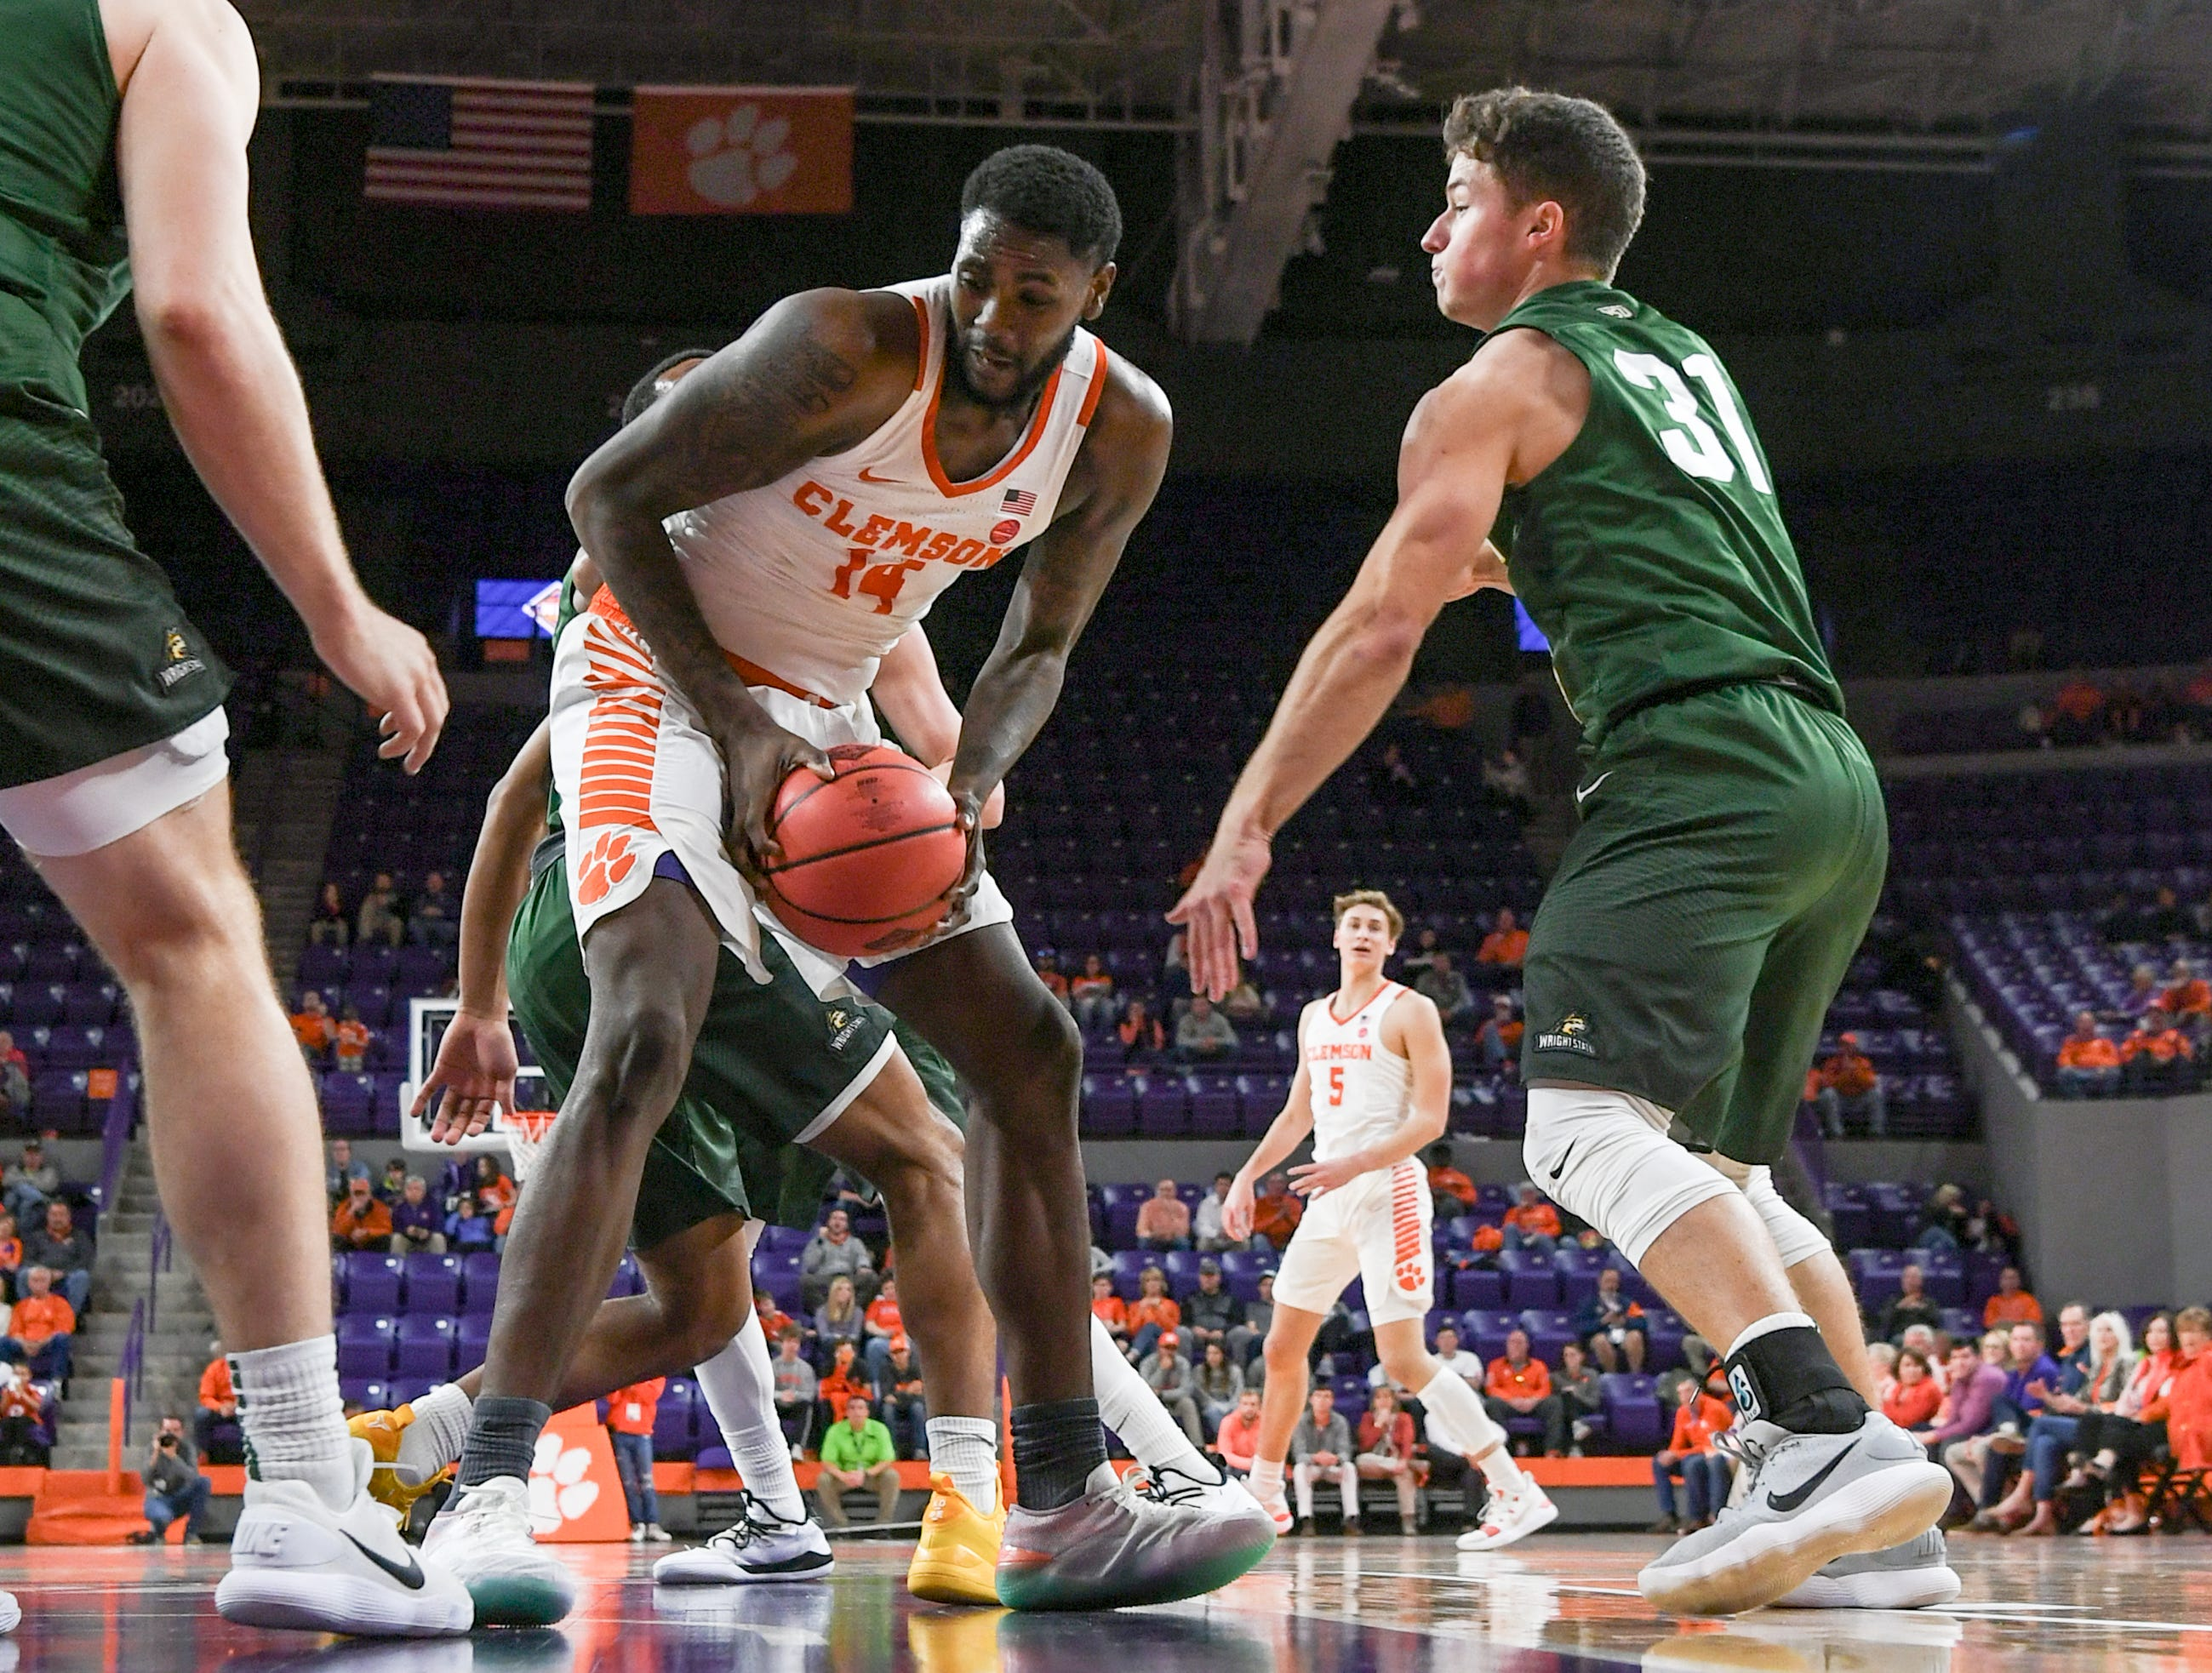 Clemson forward Elijah Thomas (14) rebounds near Wright State guard Cole Gentry(31) during the first half of the NIT at Littlejohn Coliseum in Clemson Tuesday, March 19, 2019.